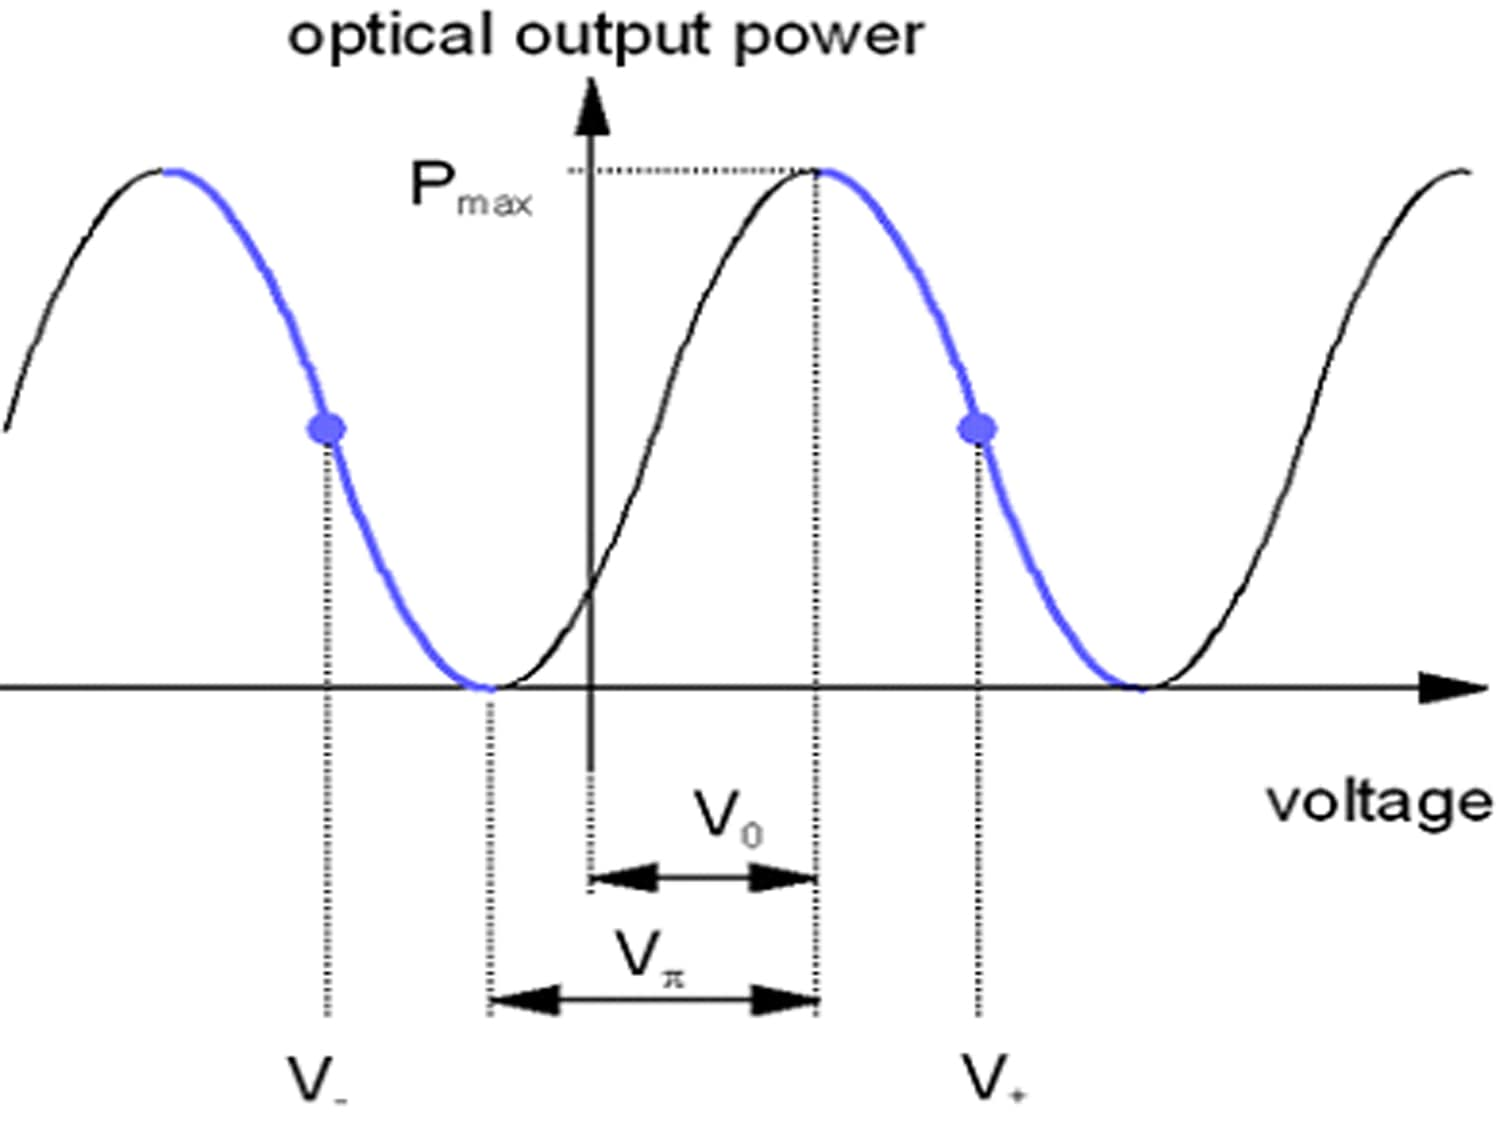 modulator characteristic curve with two equivalent operation points